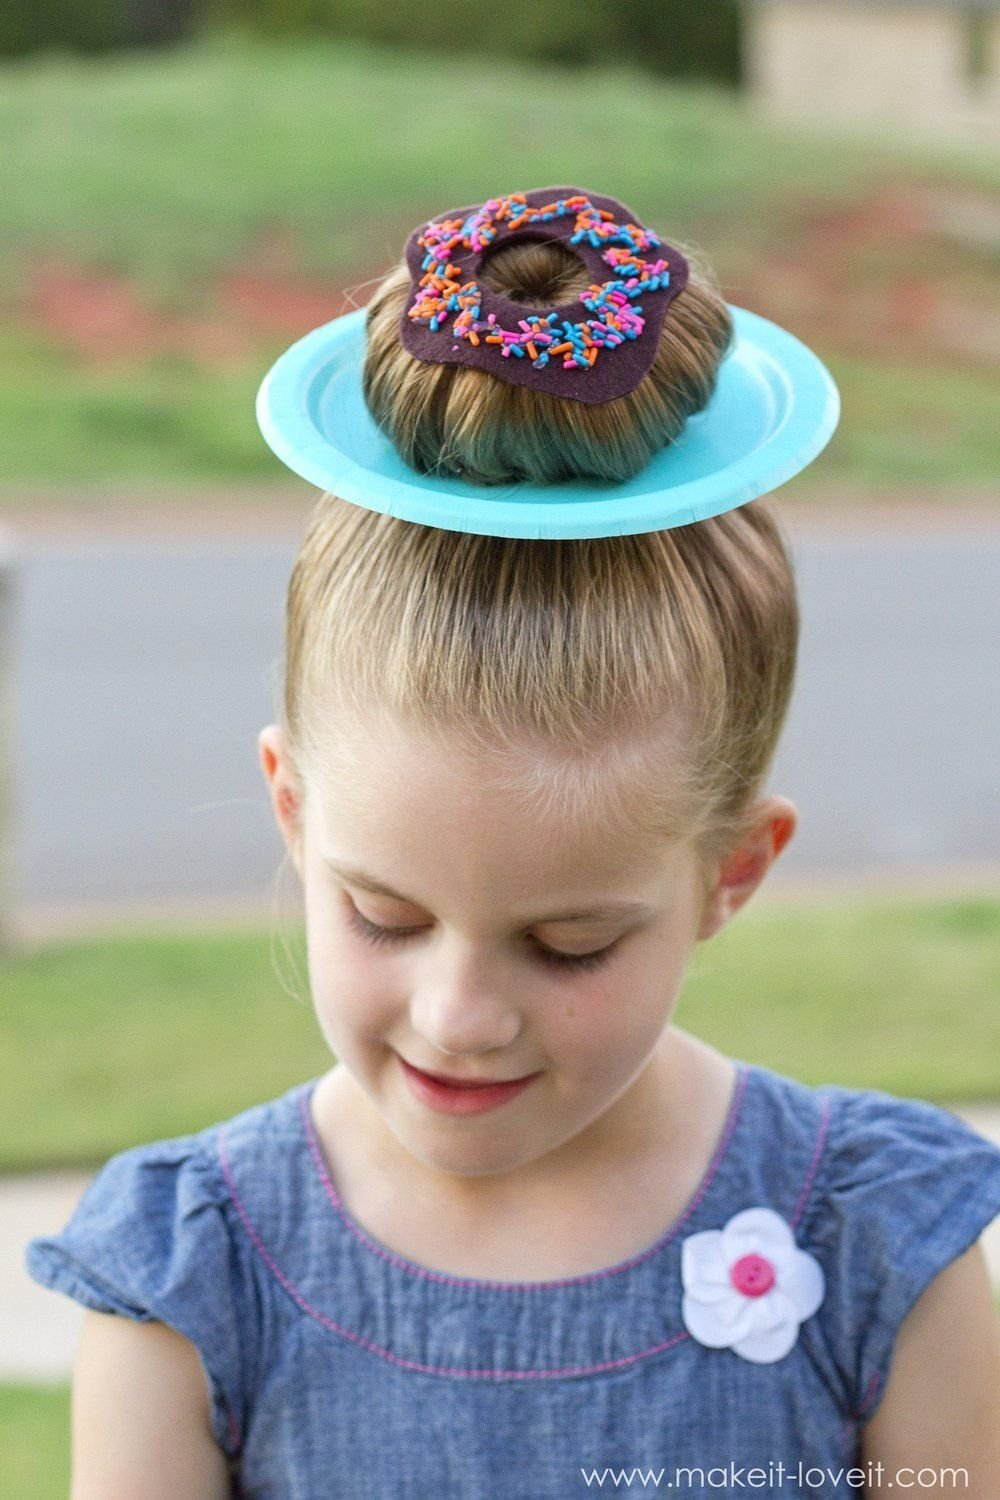 10 Most Recommended Crazy Hair Ideas For School 25 clever ideas for wacky hair day at school including 16